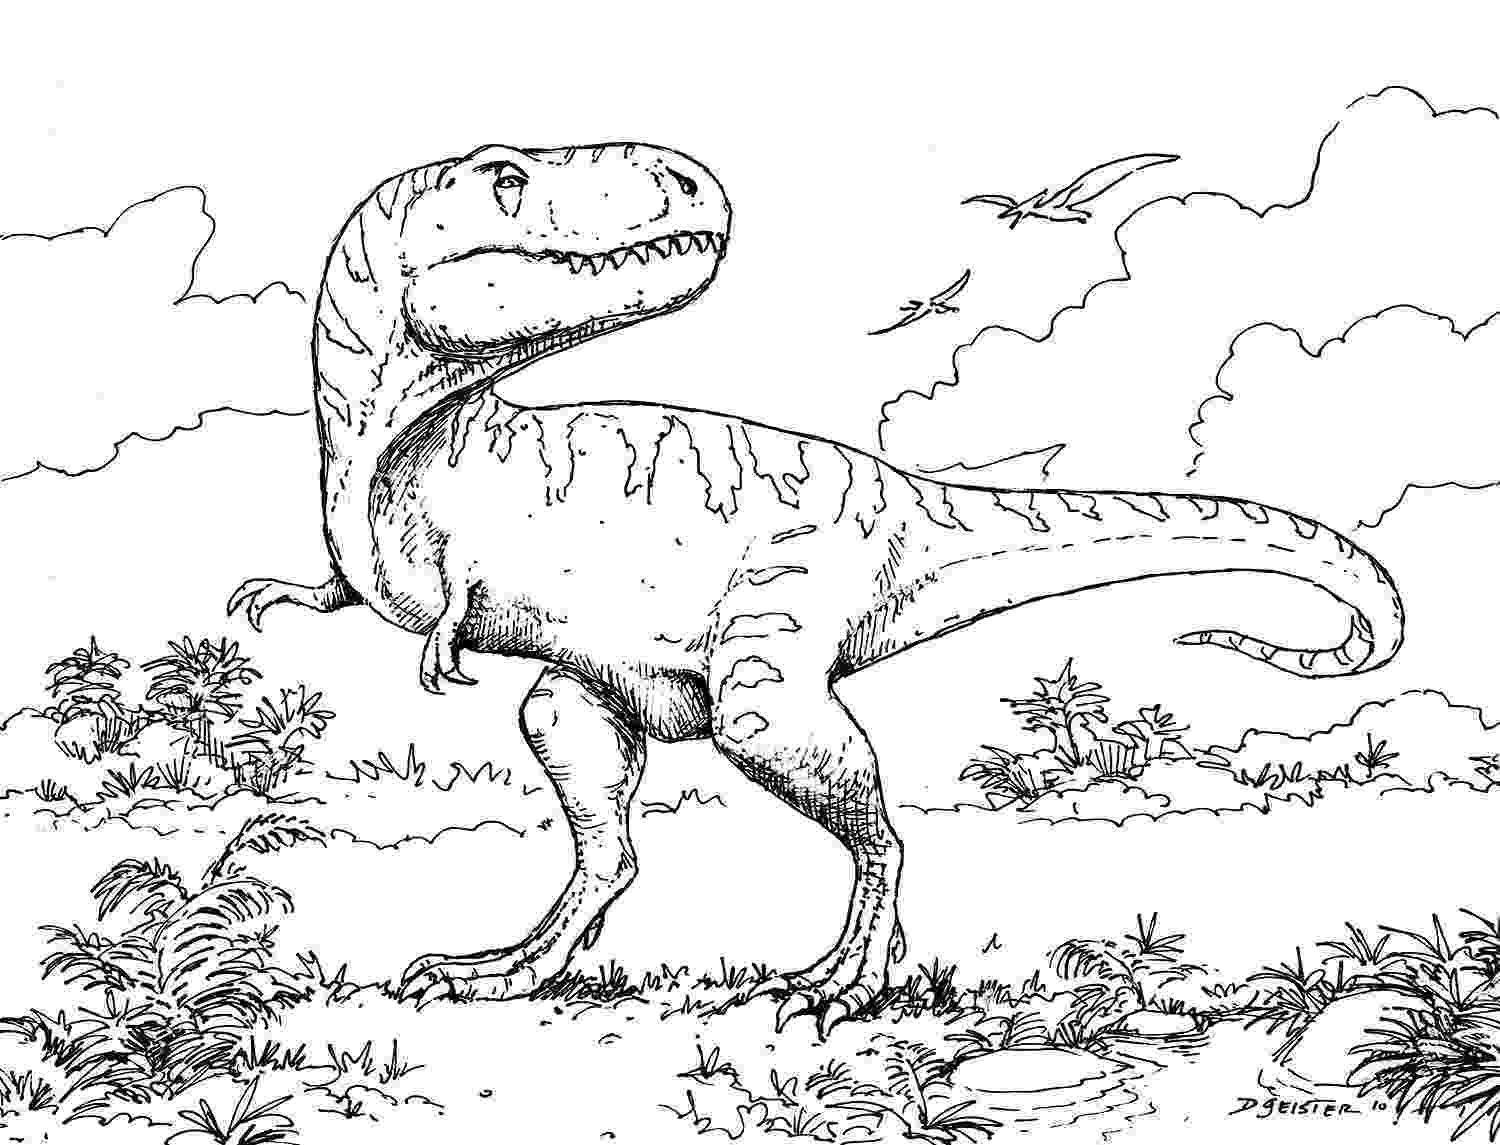 dinosaur colouring page dinosaurs coloring pages printable minister coloring dinosaur colouring page